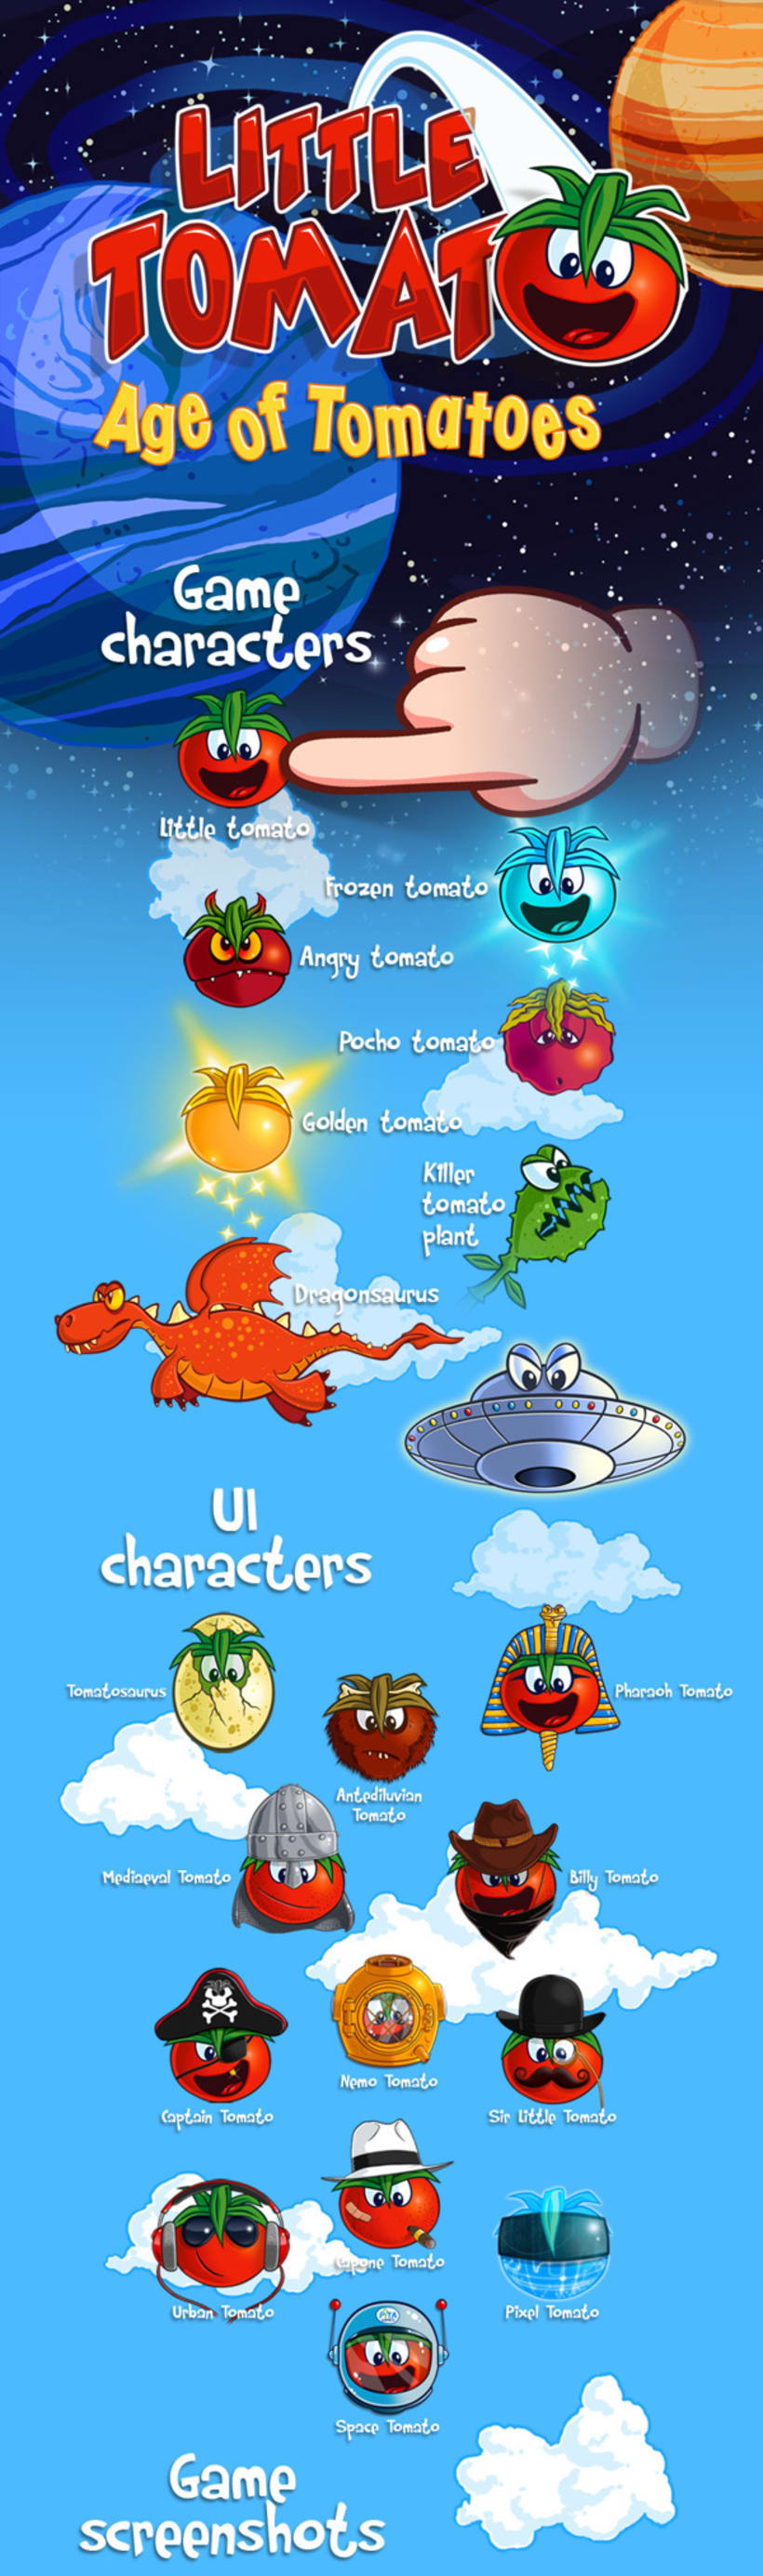 Little Tomato, Age of Tomatoes, Android and iOS game 0